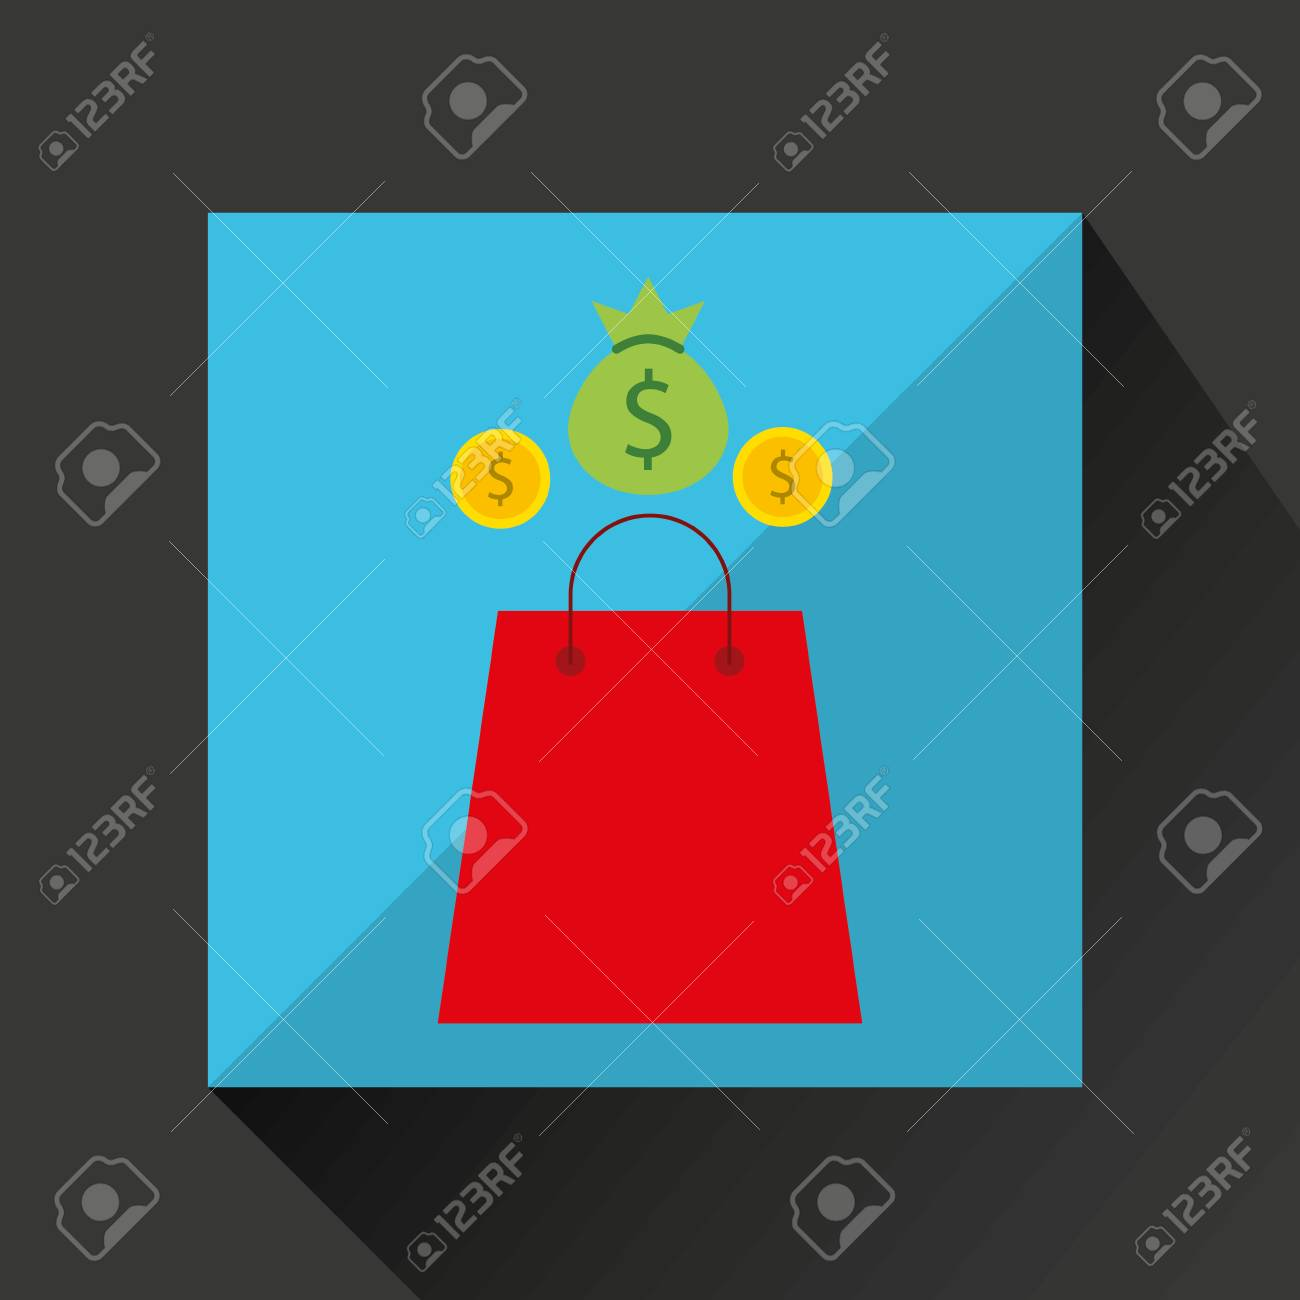 trading stuff concept icon, vector illustration eps10